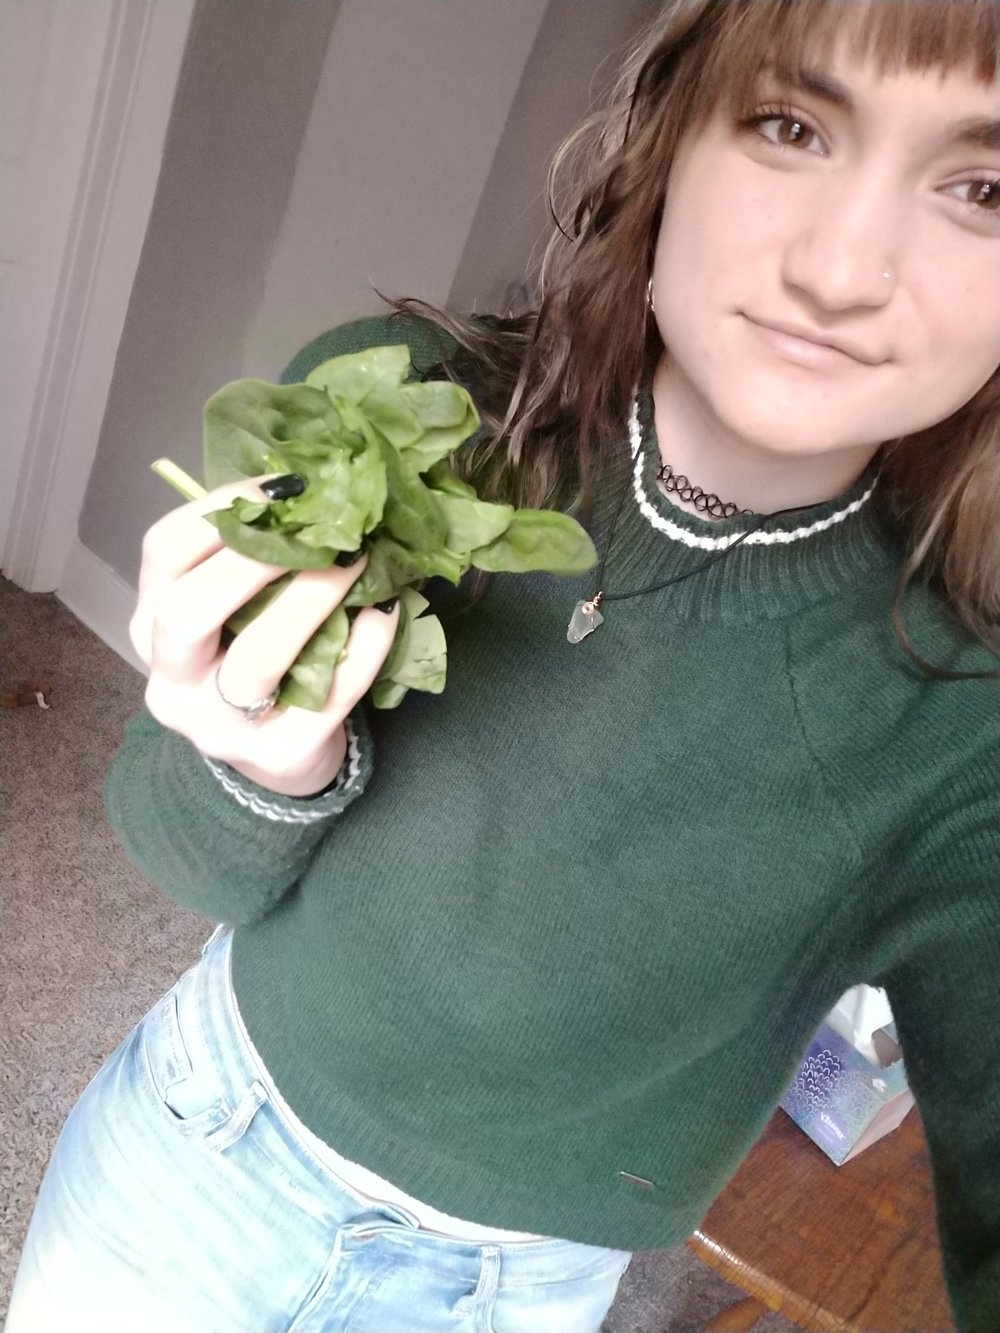 Marissa Stifter, one of the six members of Lettuce Club, with another one of her favorite green vegetables, spinach. Stifter has been helping Andrew Weisz restart the club to help with his stress over it. Photo courtesy of Marissa Stifter